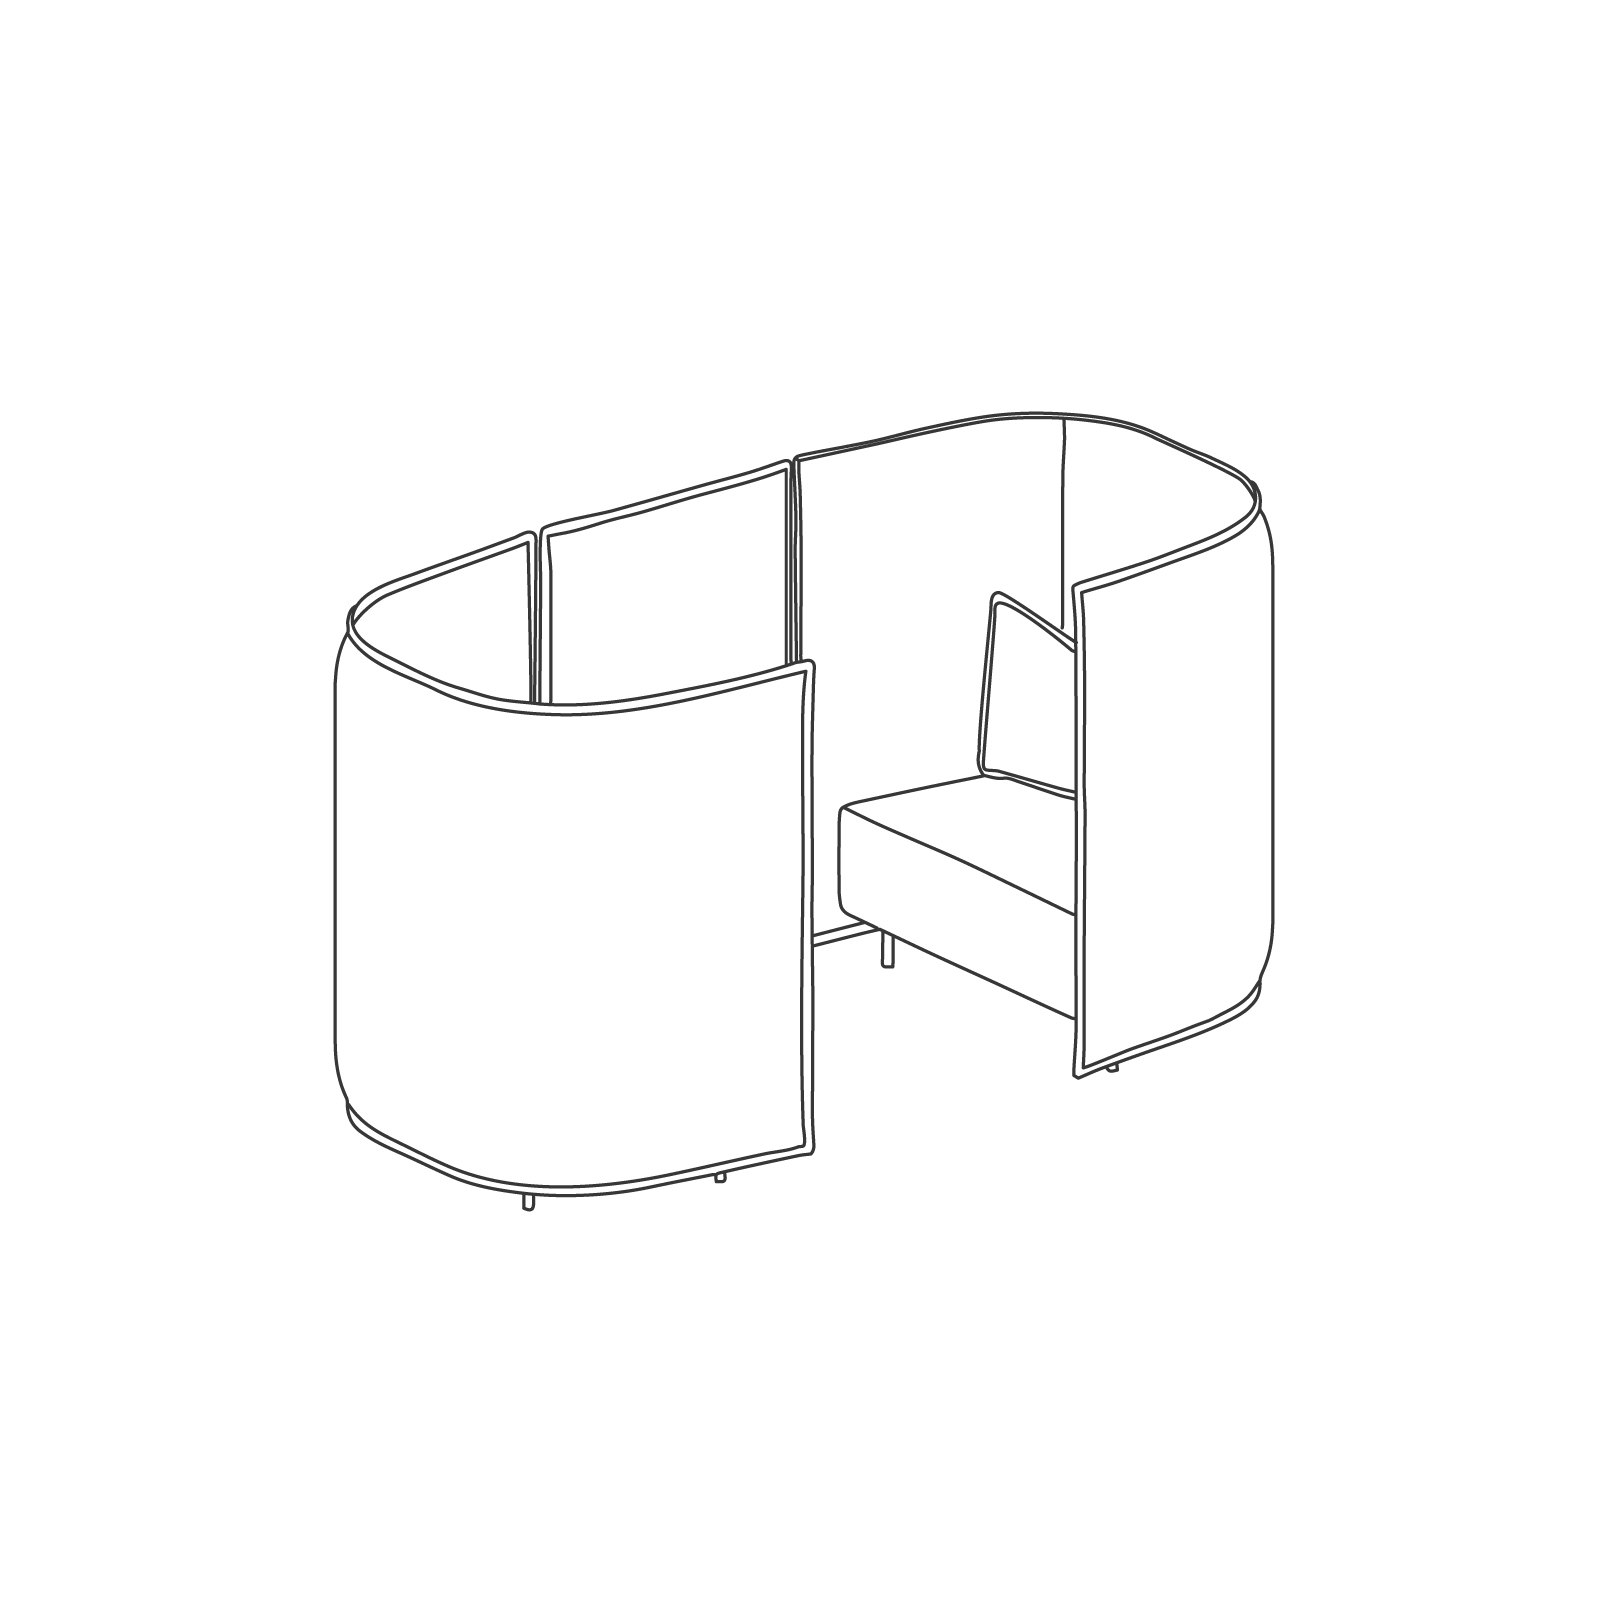 A line drawing of Cloud Plain Booth–1.5 Seat.